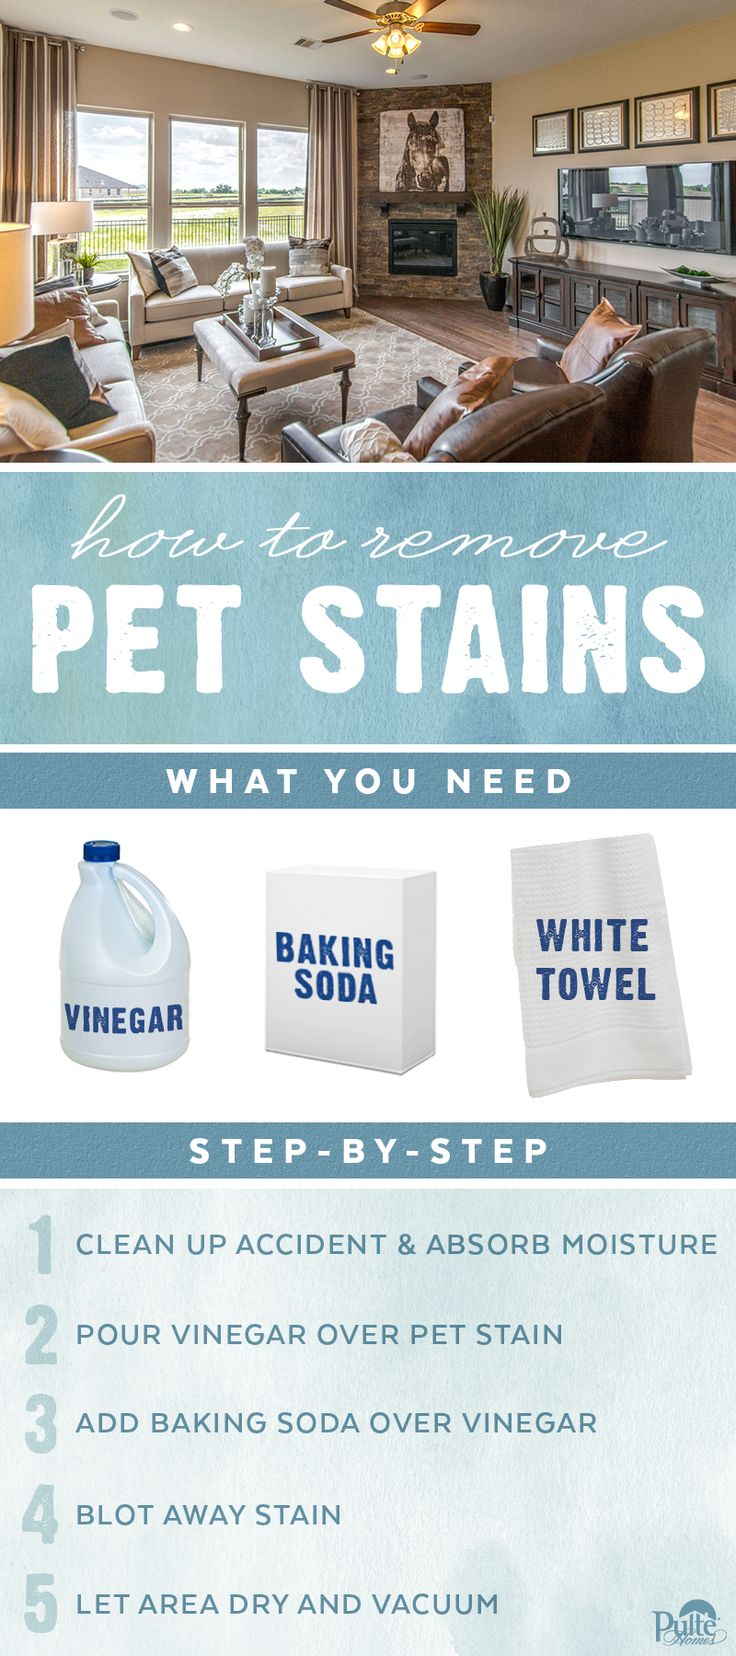 Don't let pet stains get in the way of your beautiful furniture, rug or carpet. Use these tips to remove stains and eliminate odors to keep your home looking great and smelling fresh. | Pulte Homes